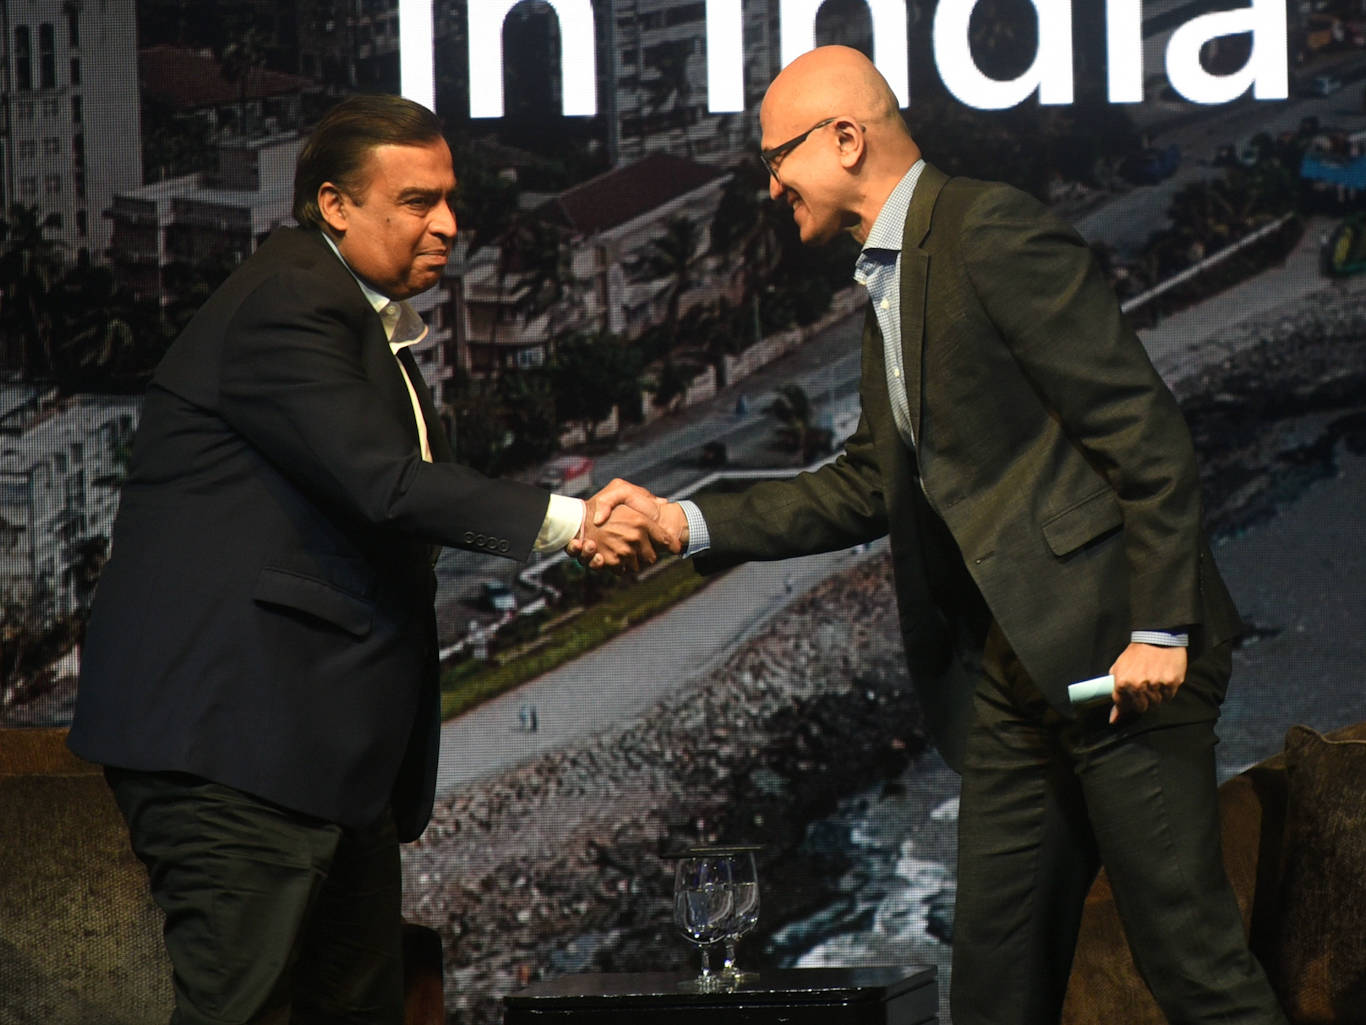 Microsoft and Mukesh Ambani's Reliance Jio are already partners in India— but Satya Nadella reportedly wants more